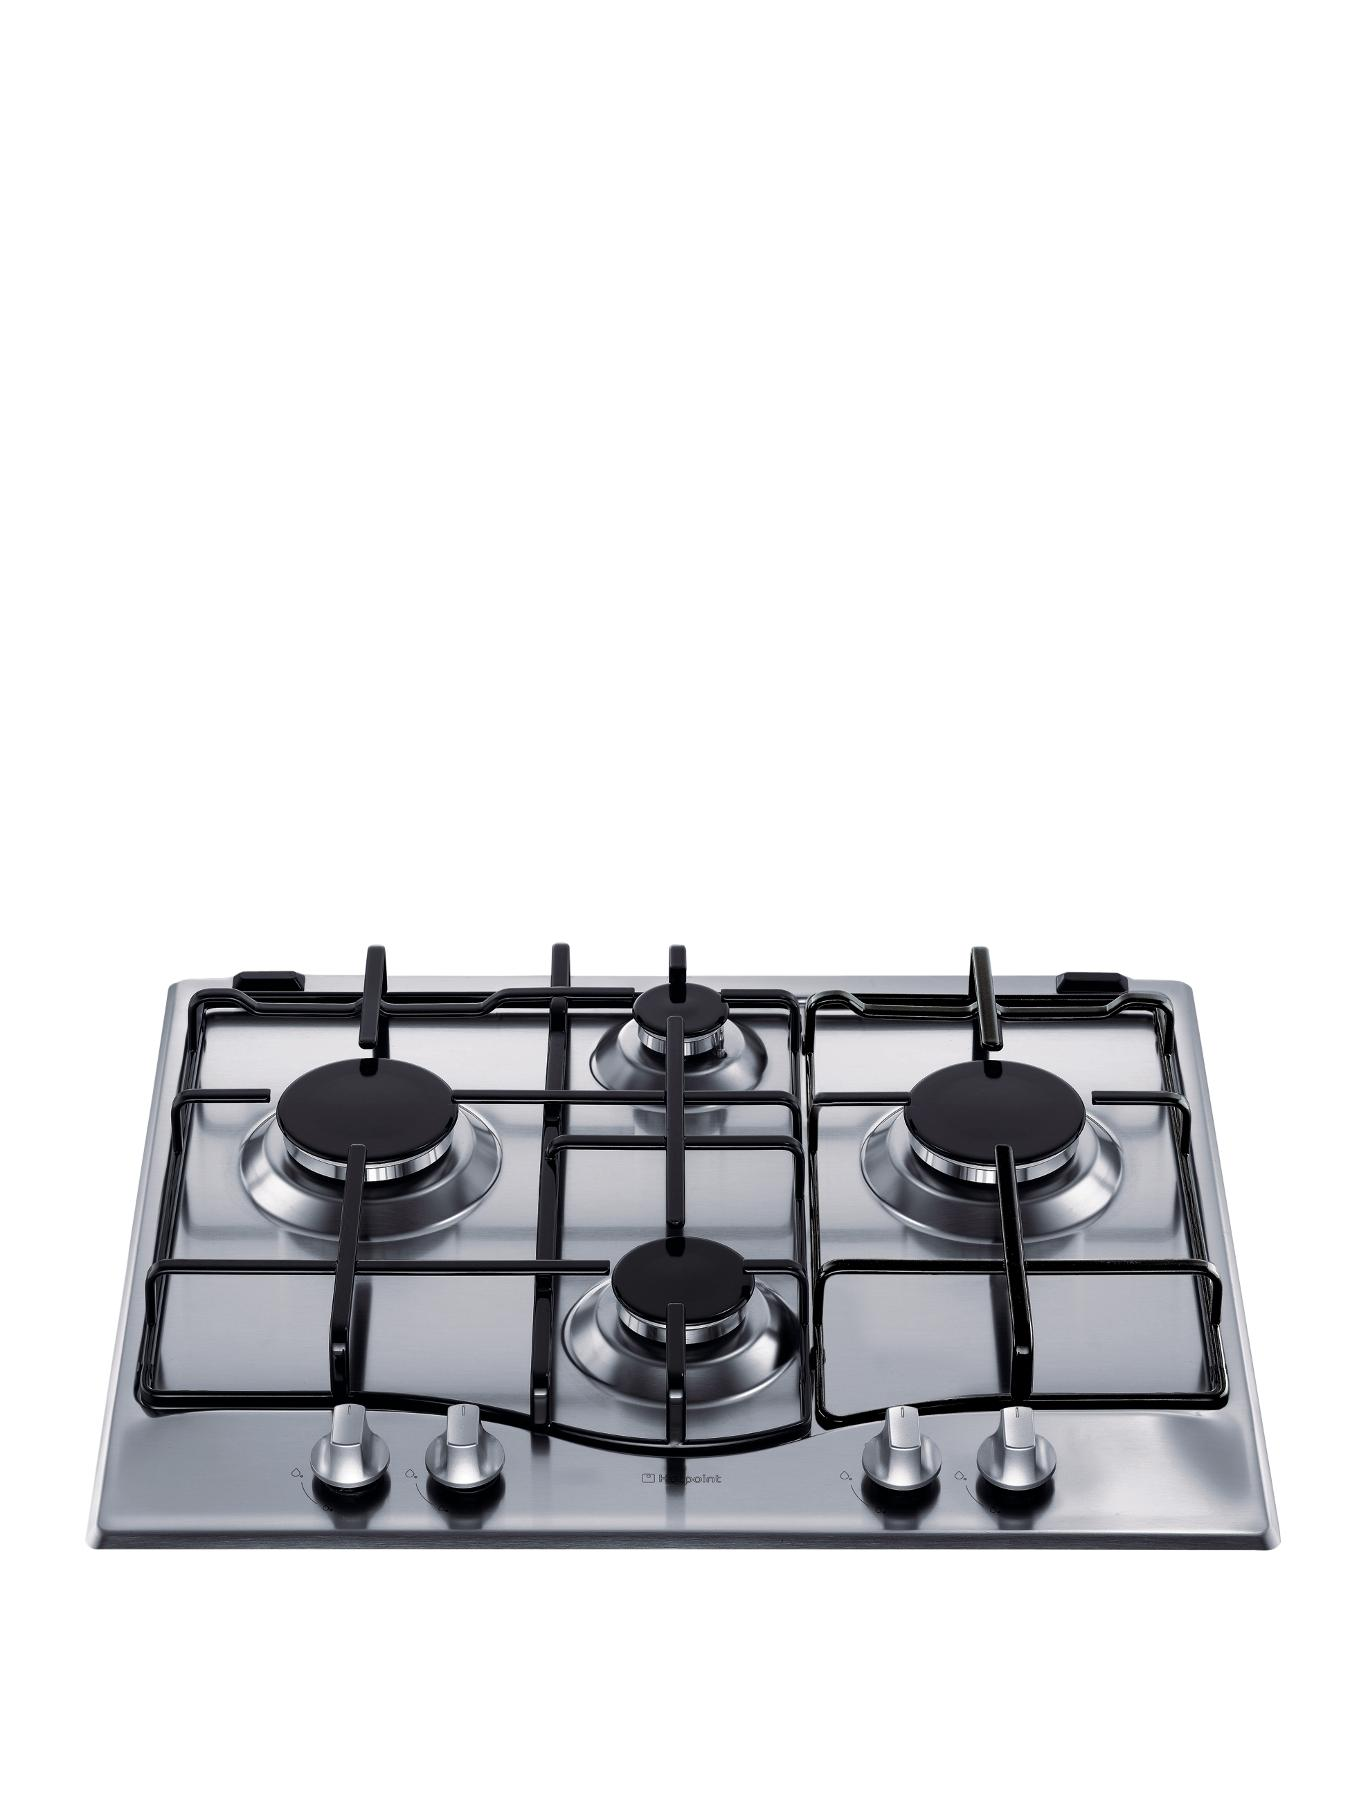 GC640IX 60cm Built-in Gas Hob - Stainless Steel